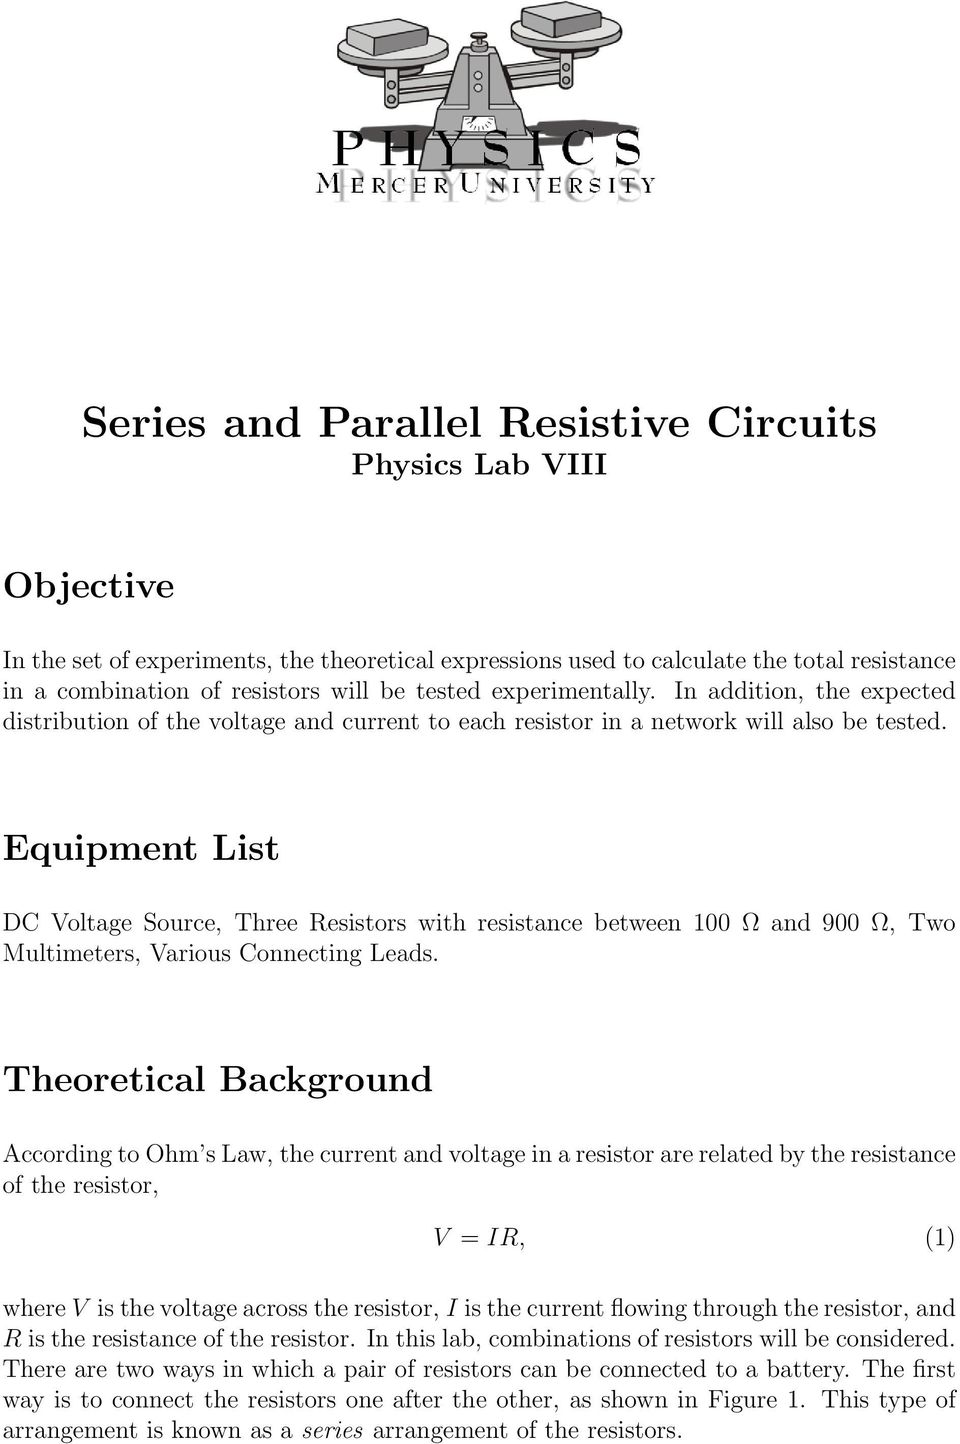 Series And Parallel Resistive Circuits Physics Lab Viii Pdf In Addition To Working Out The Resistance Ohms Law Can Be Used Equipment List Dc Voltage Source Three Resistors With Between 100 900